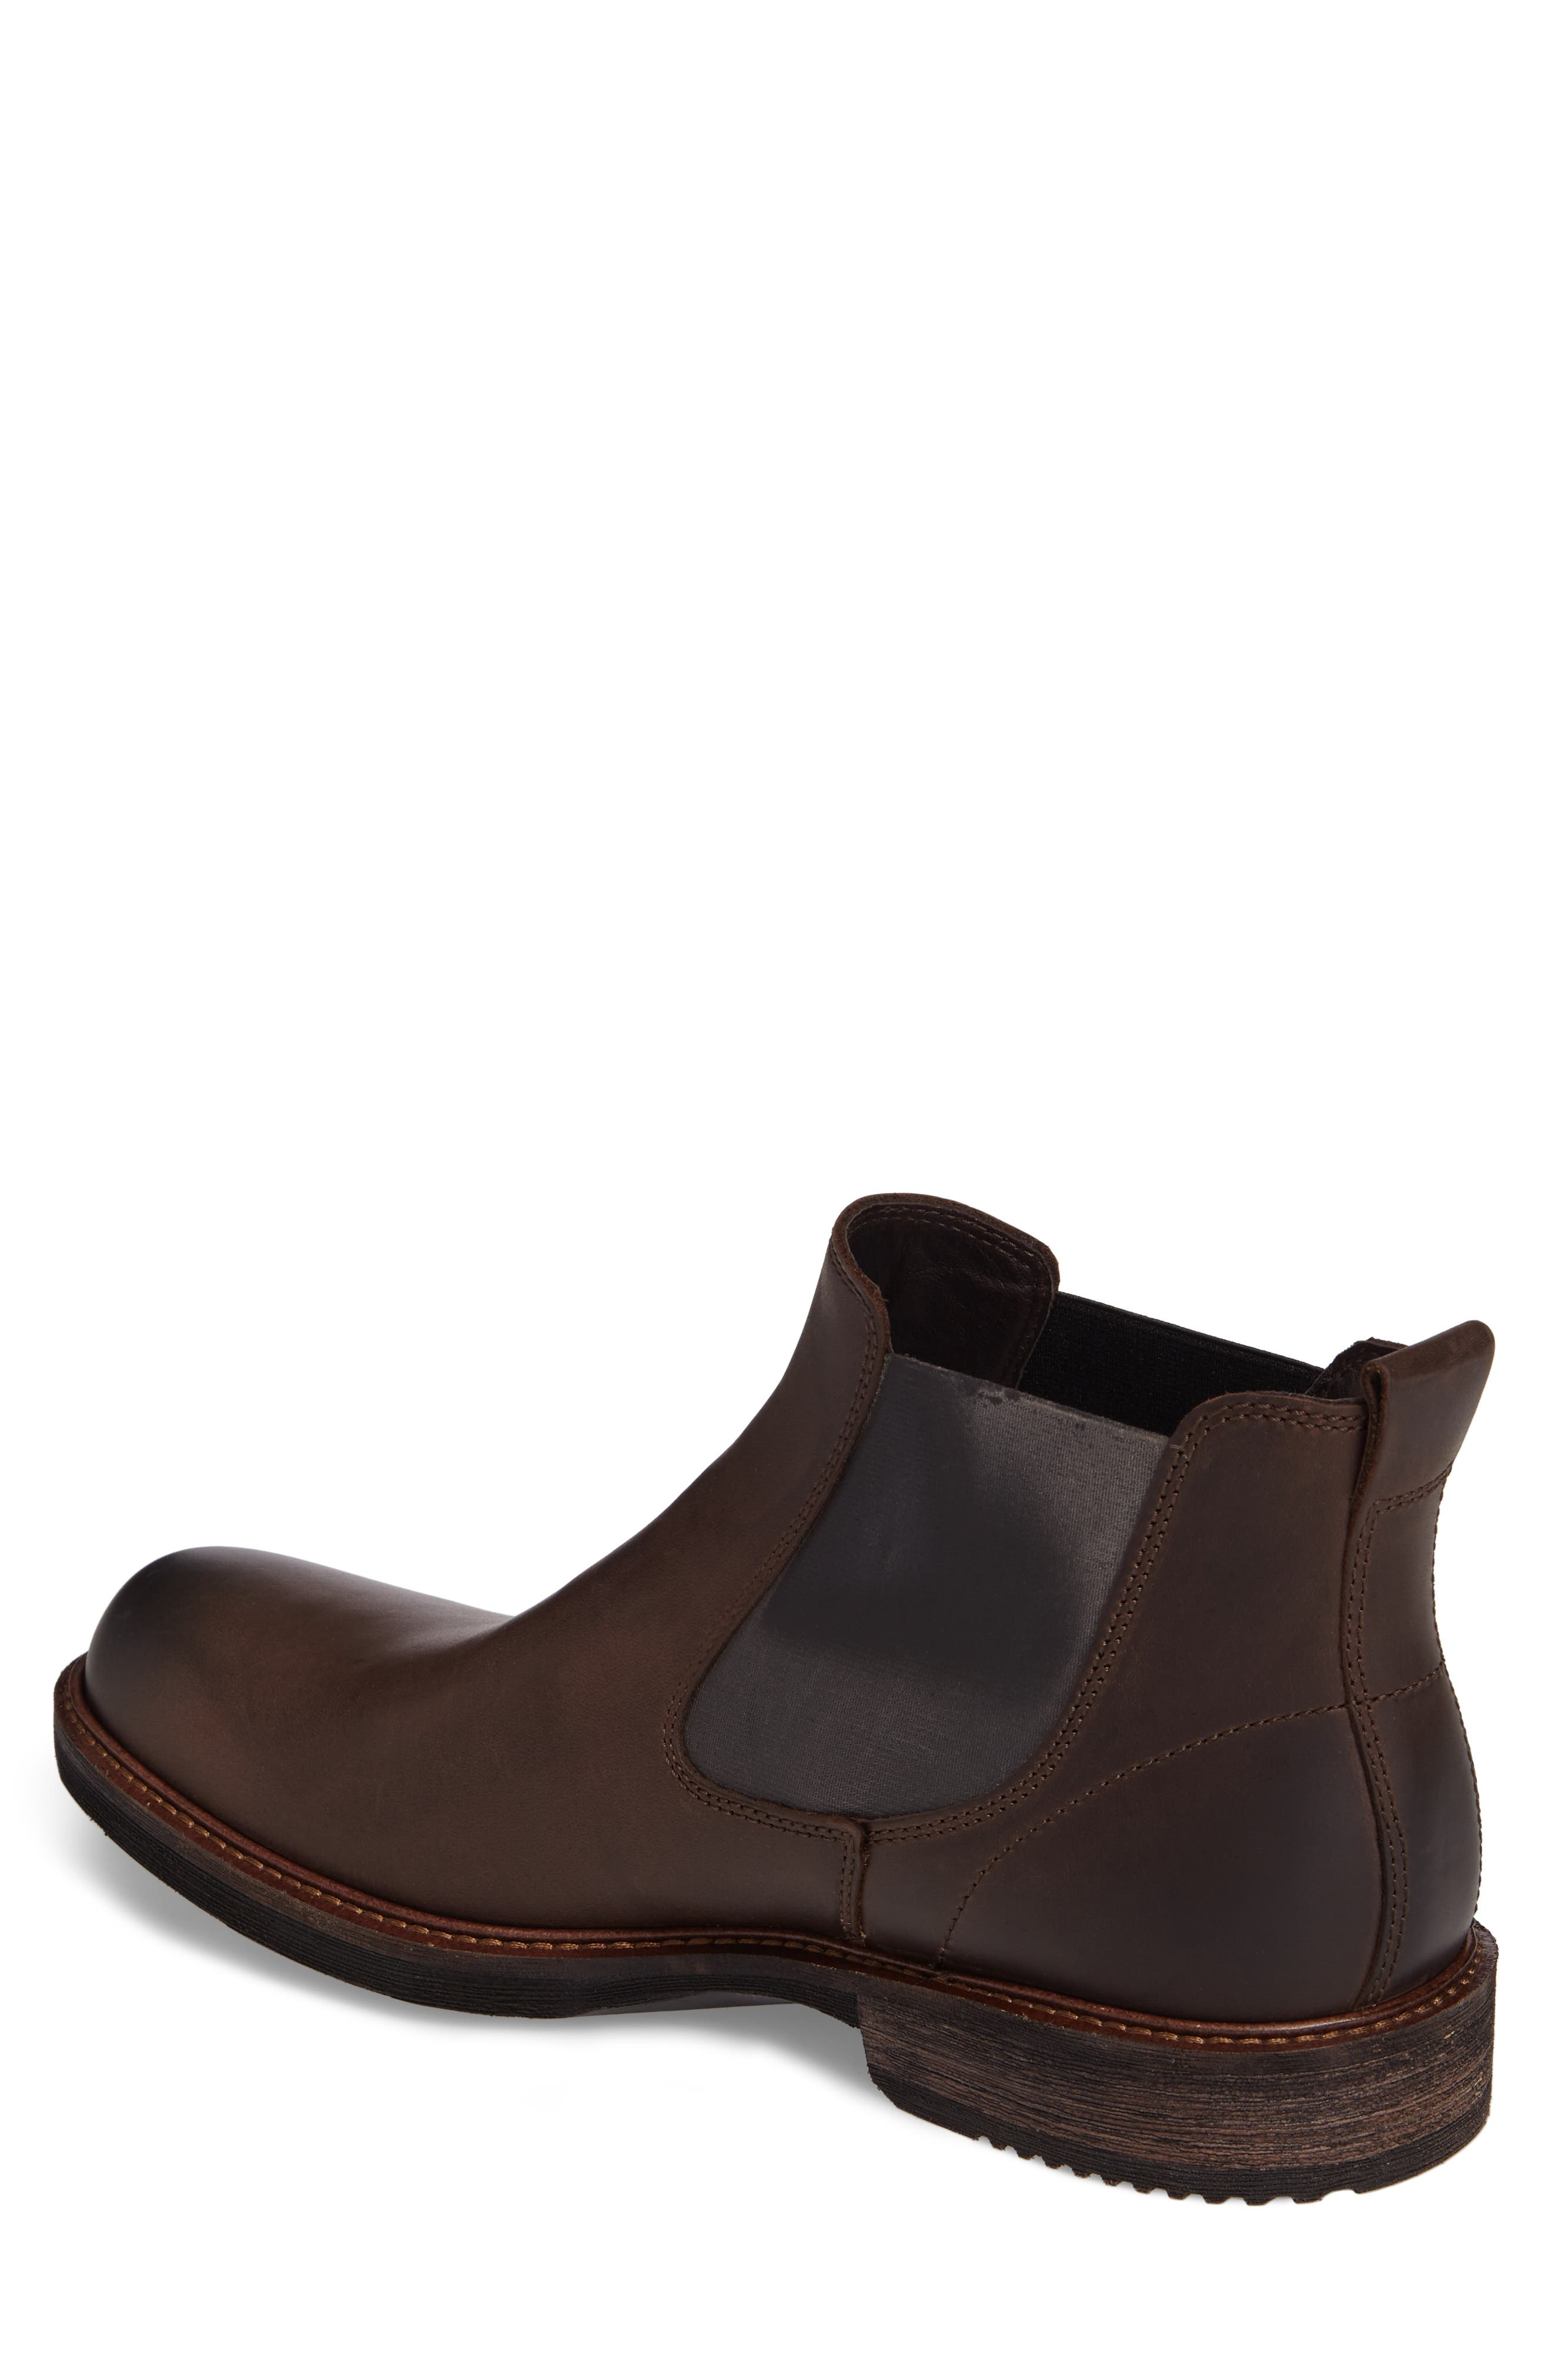 Kenton Chelsea Boot,                             Alternate thumbnail 2, color,                             217